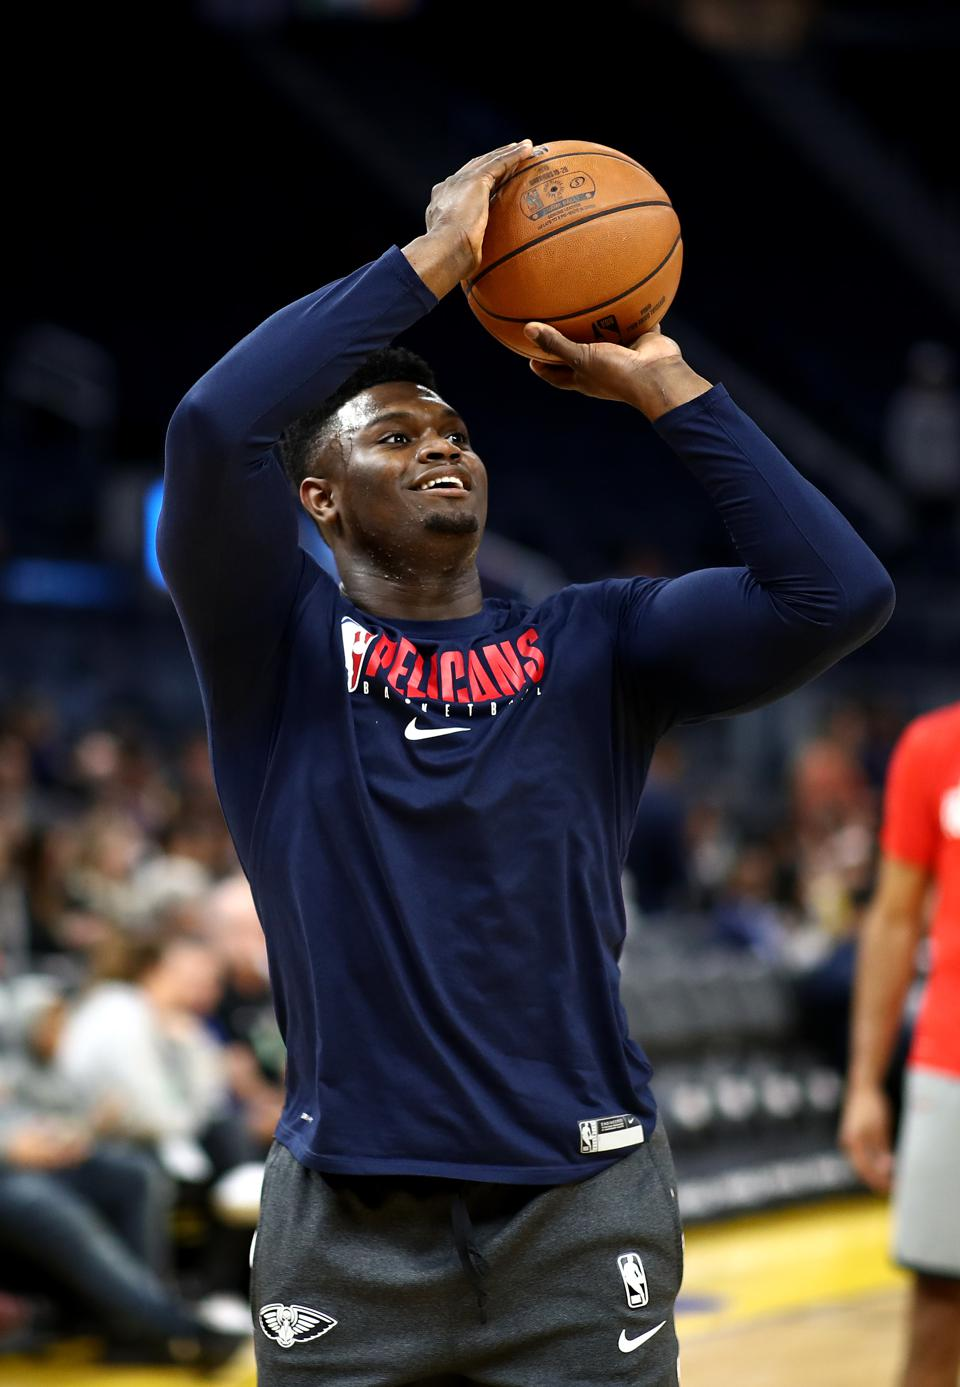 NBA player Zion Williams has donated money to support arena workers following the cancellation of the rest of the season